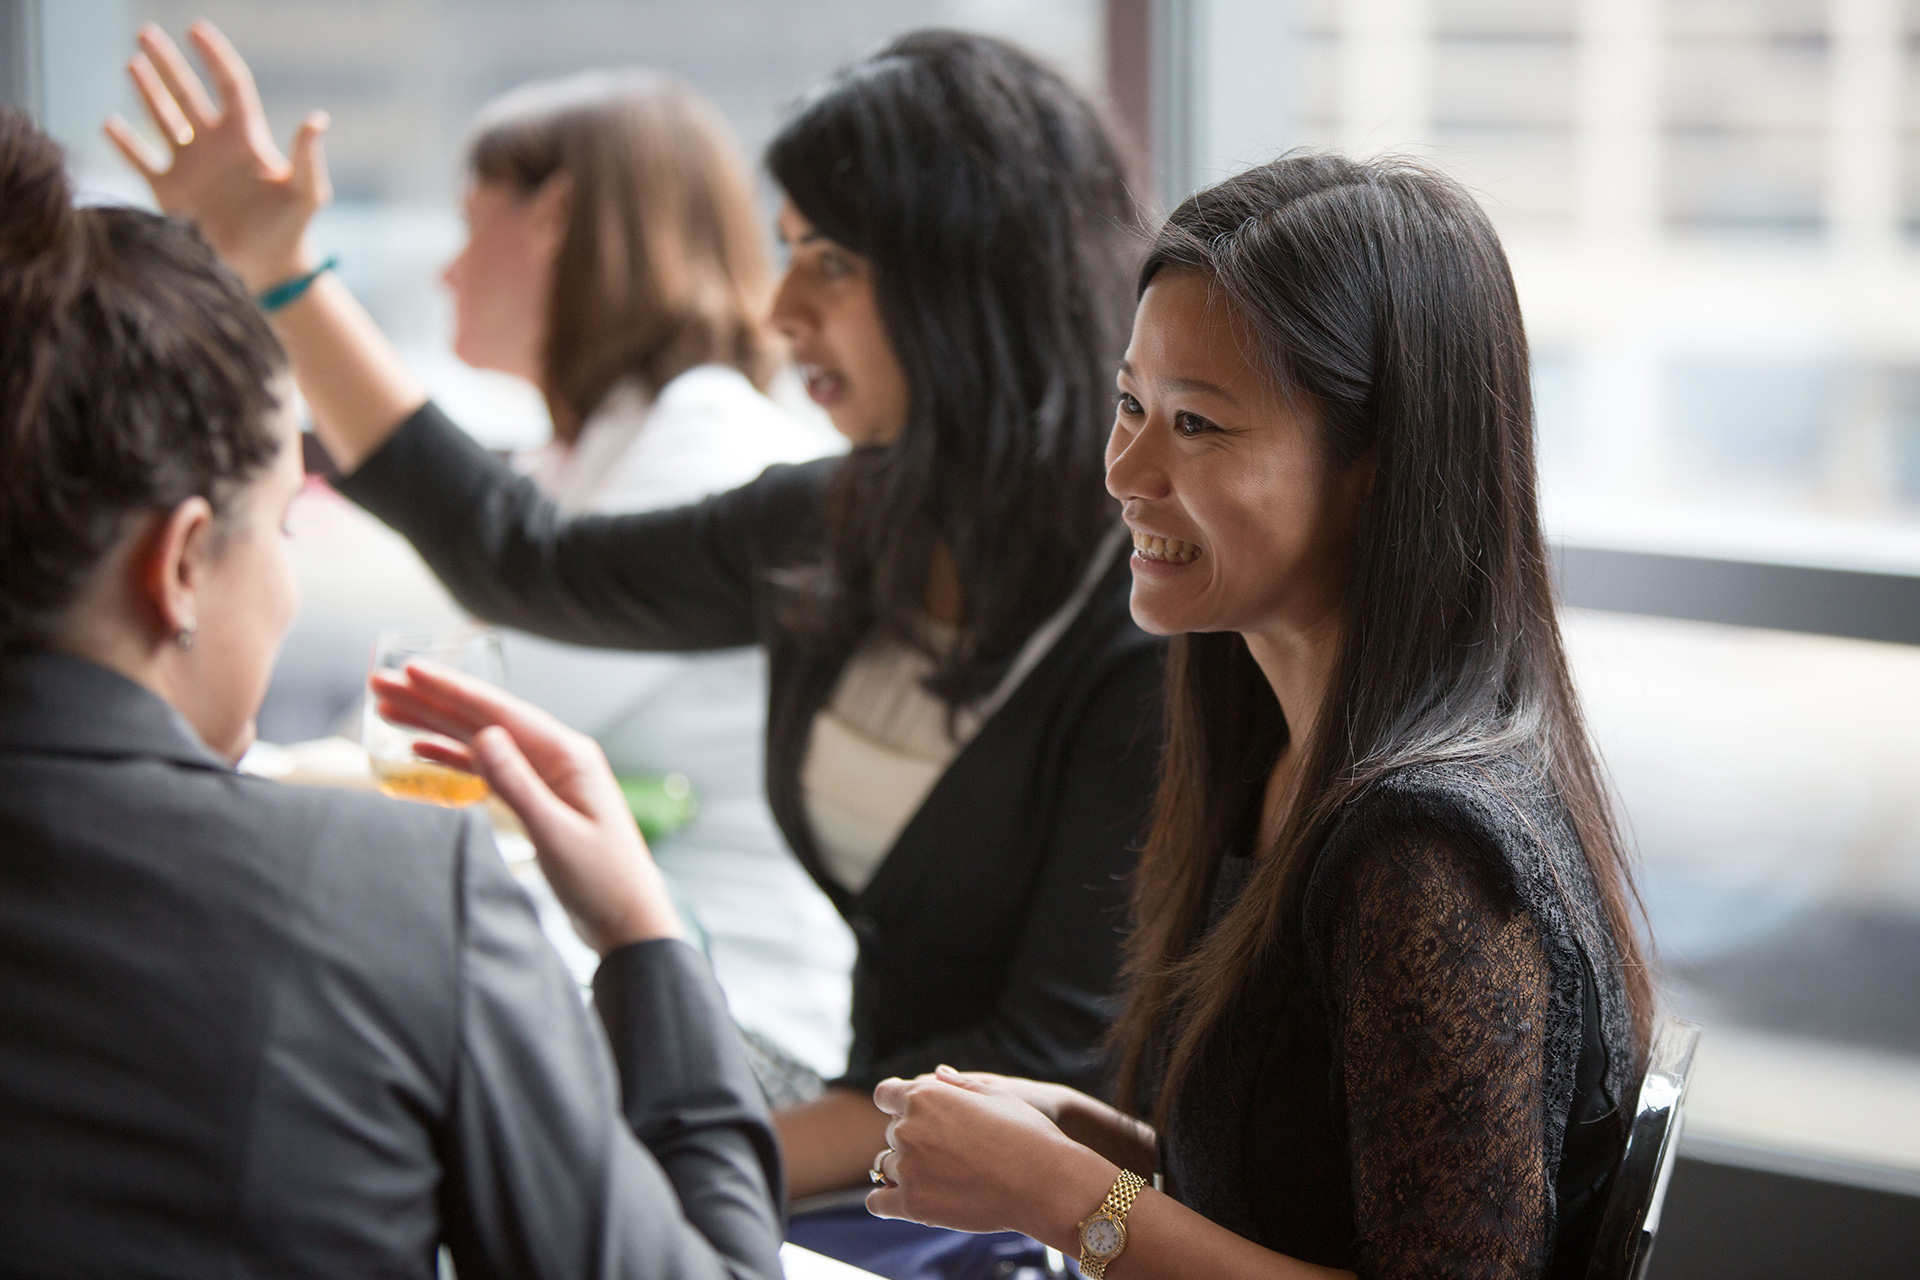 Many women took full advantage of the amazing networking opportunity the conference presented.